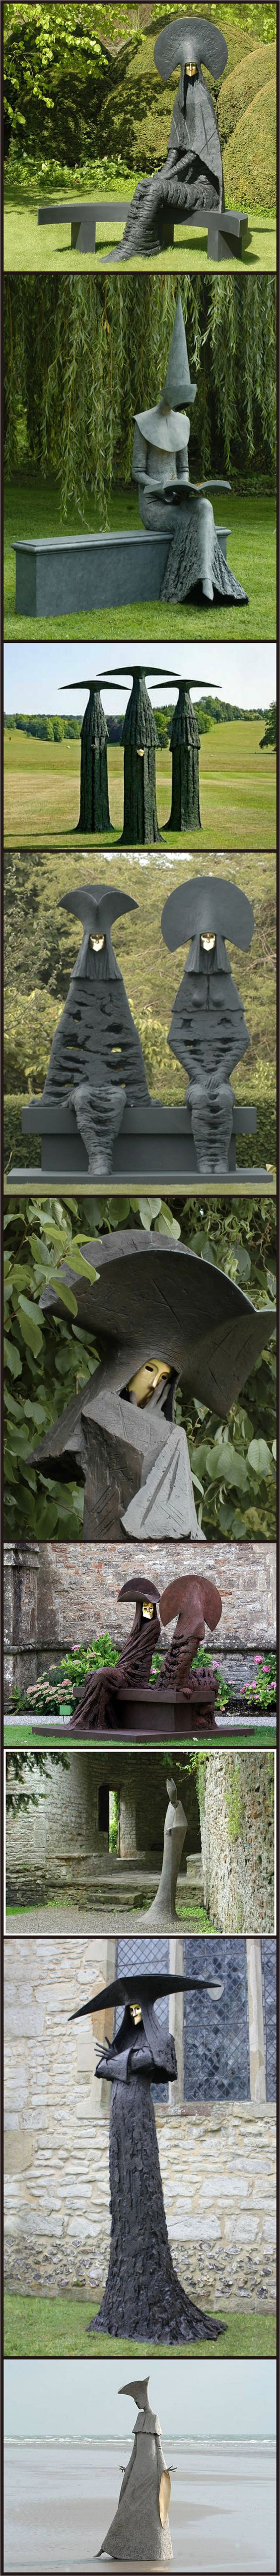 Philip Jackson. 1944. Winner of National Peace Sculpture Competition, Manchester City Council, 1987.